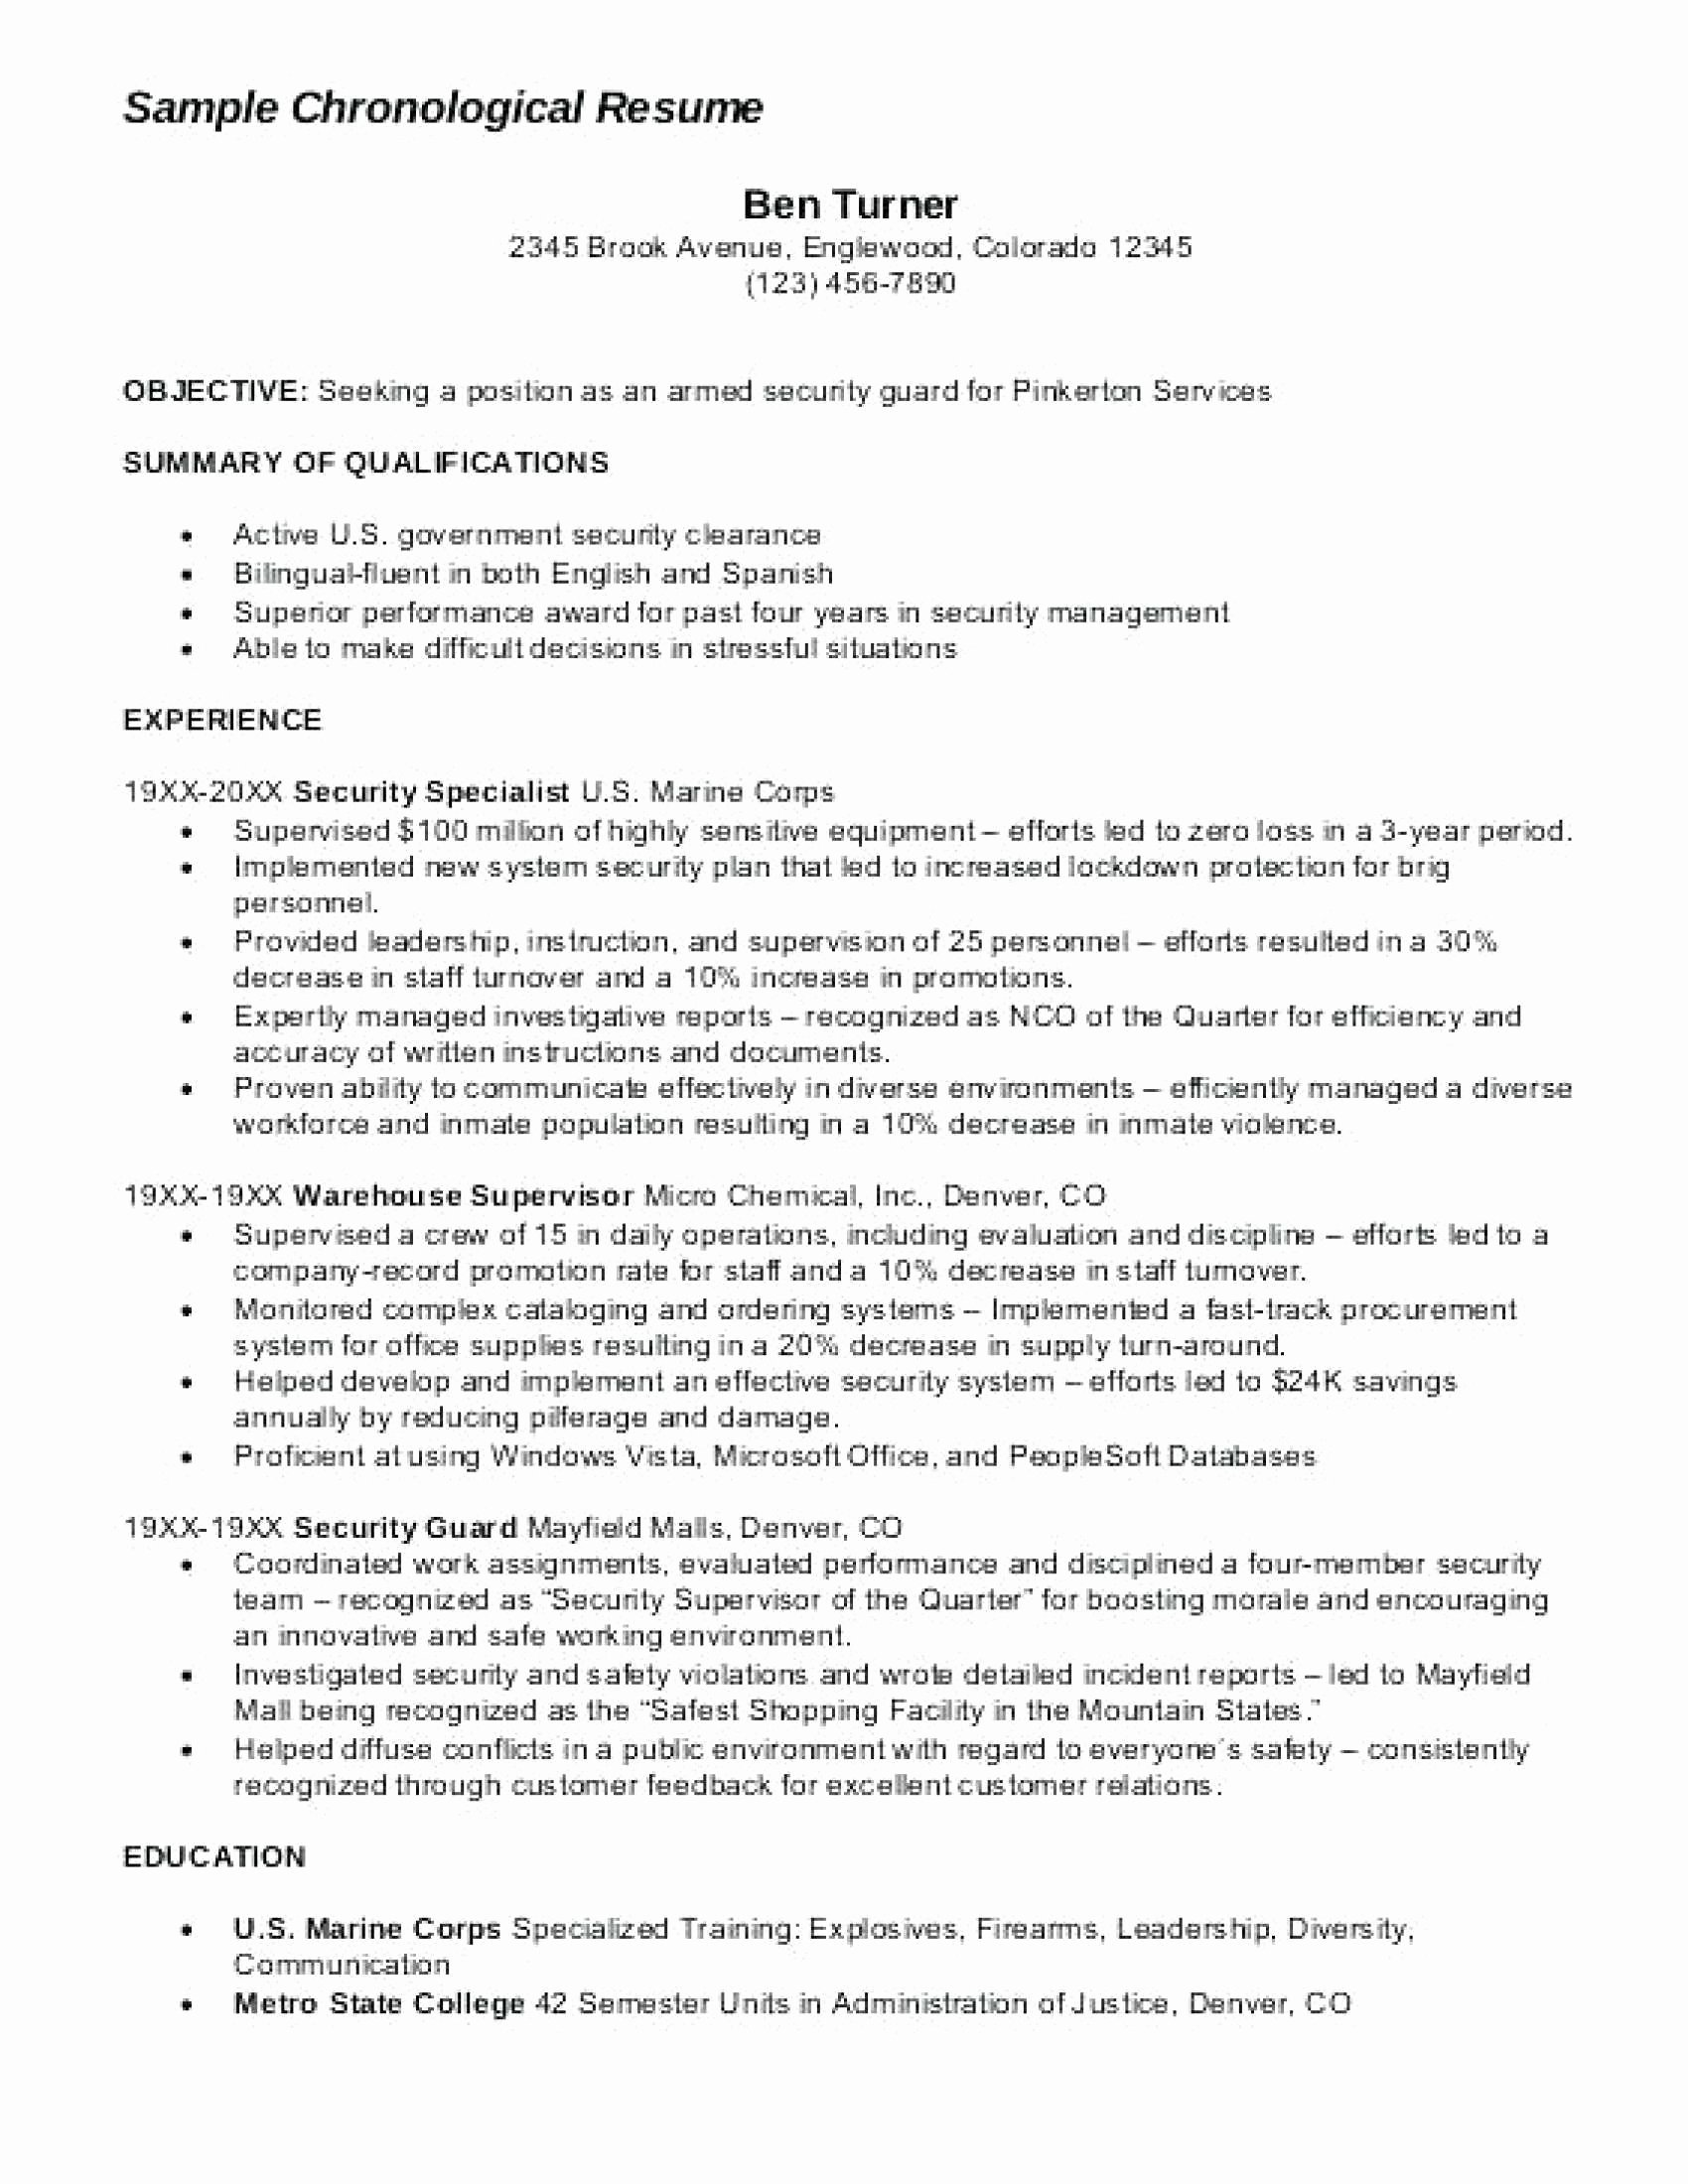 Armed Security Resume Armed Security Guard Resume Sample